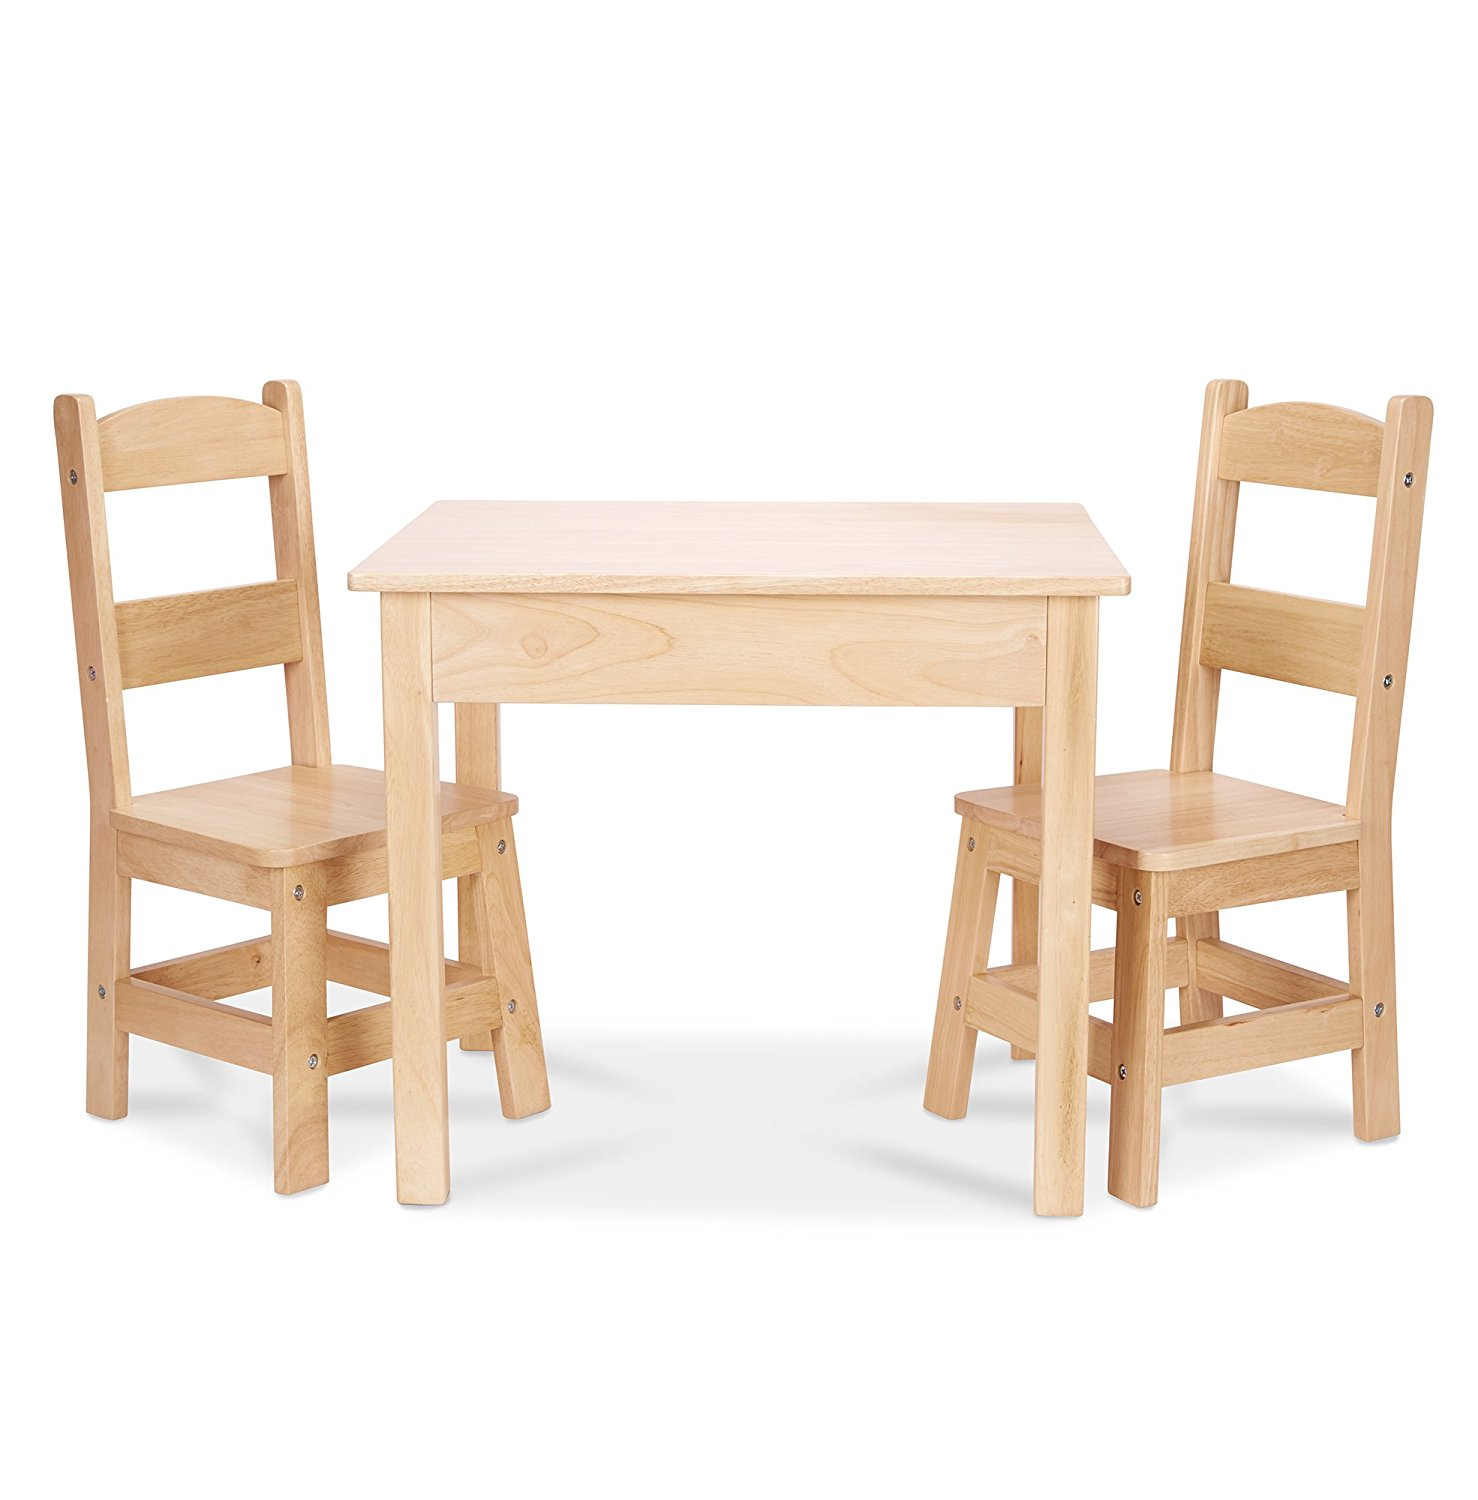 Melissa doug solid wood table and 2 chairs set light for Kids sitting furniture